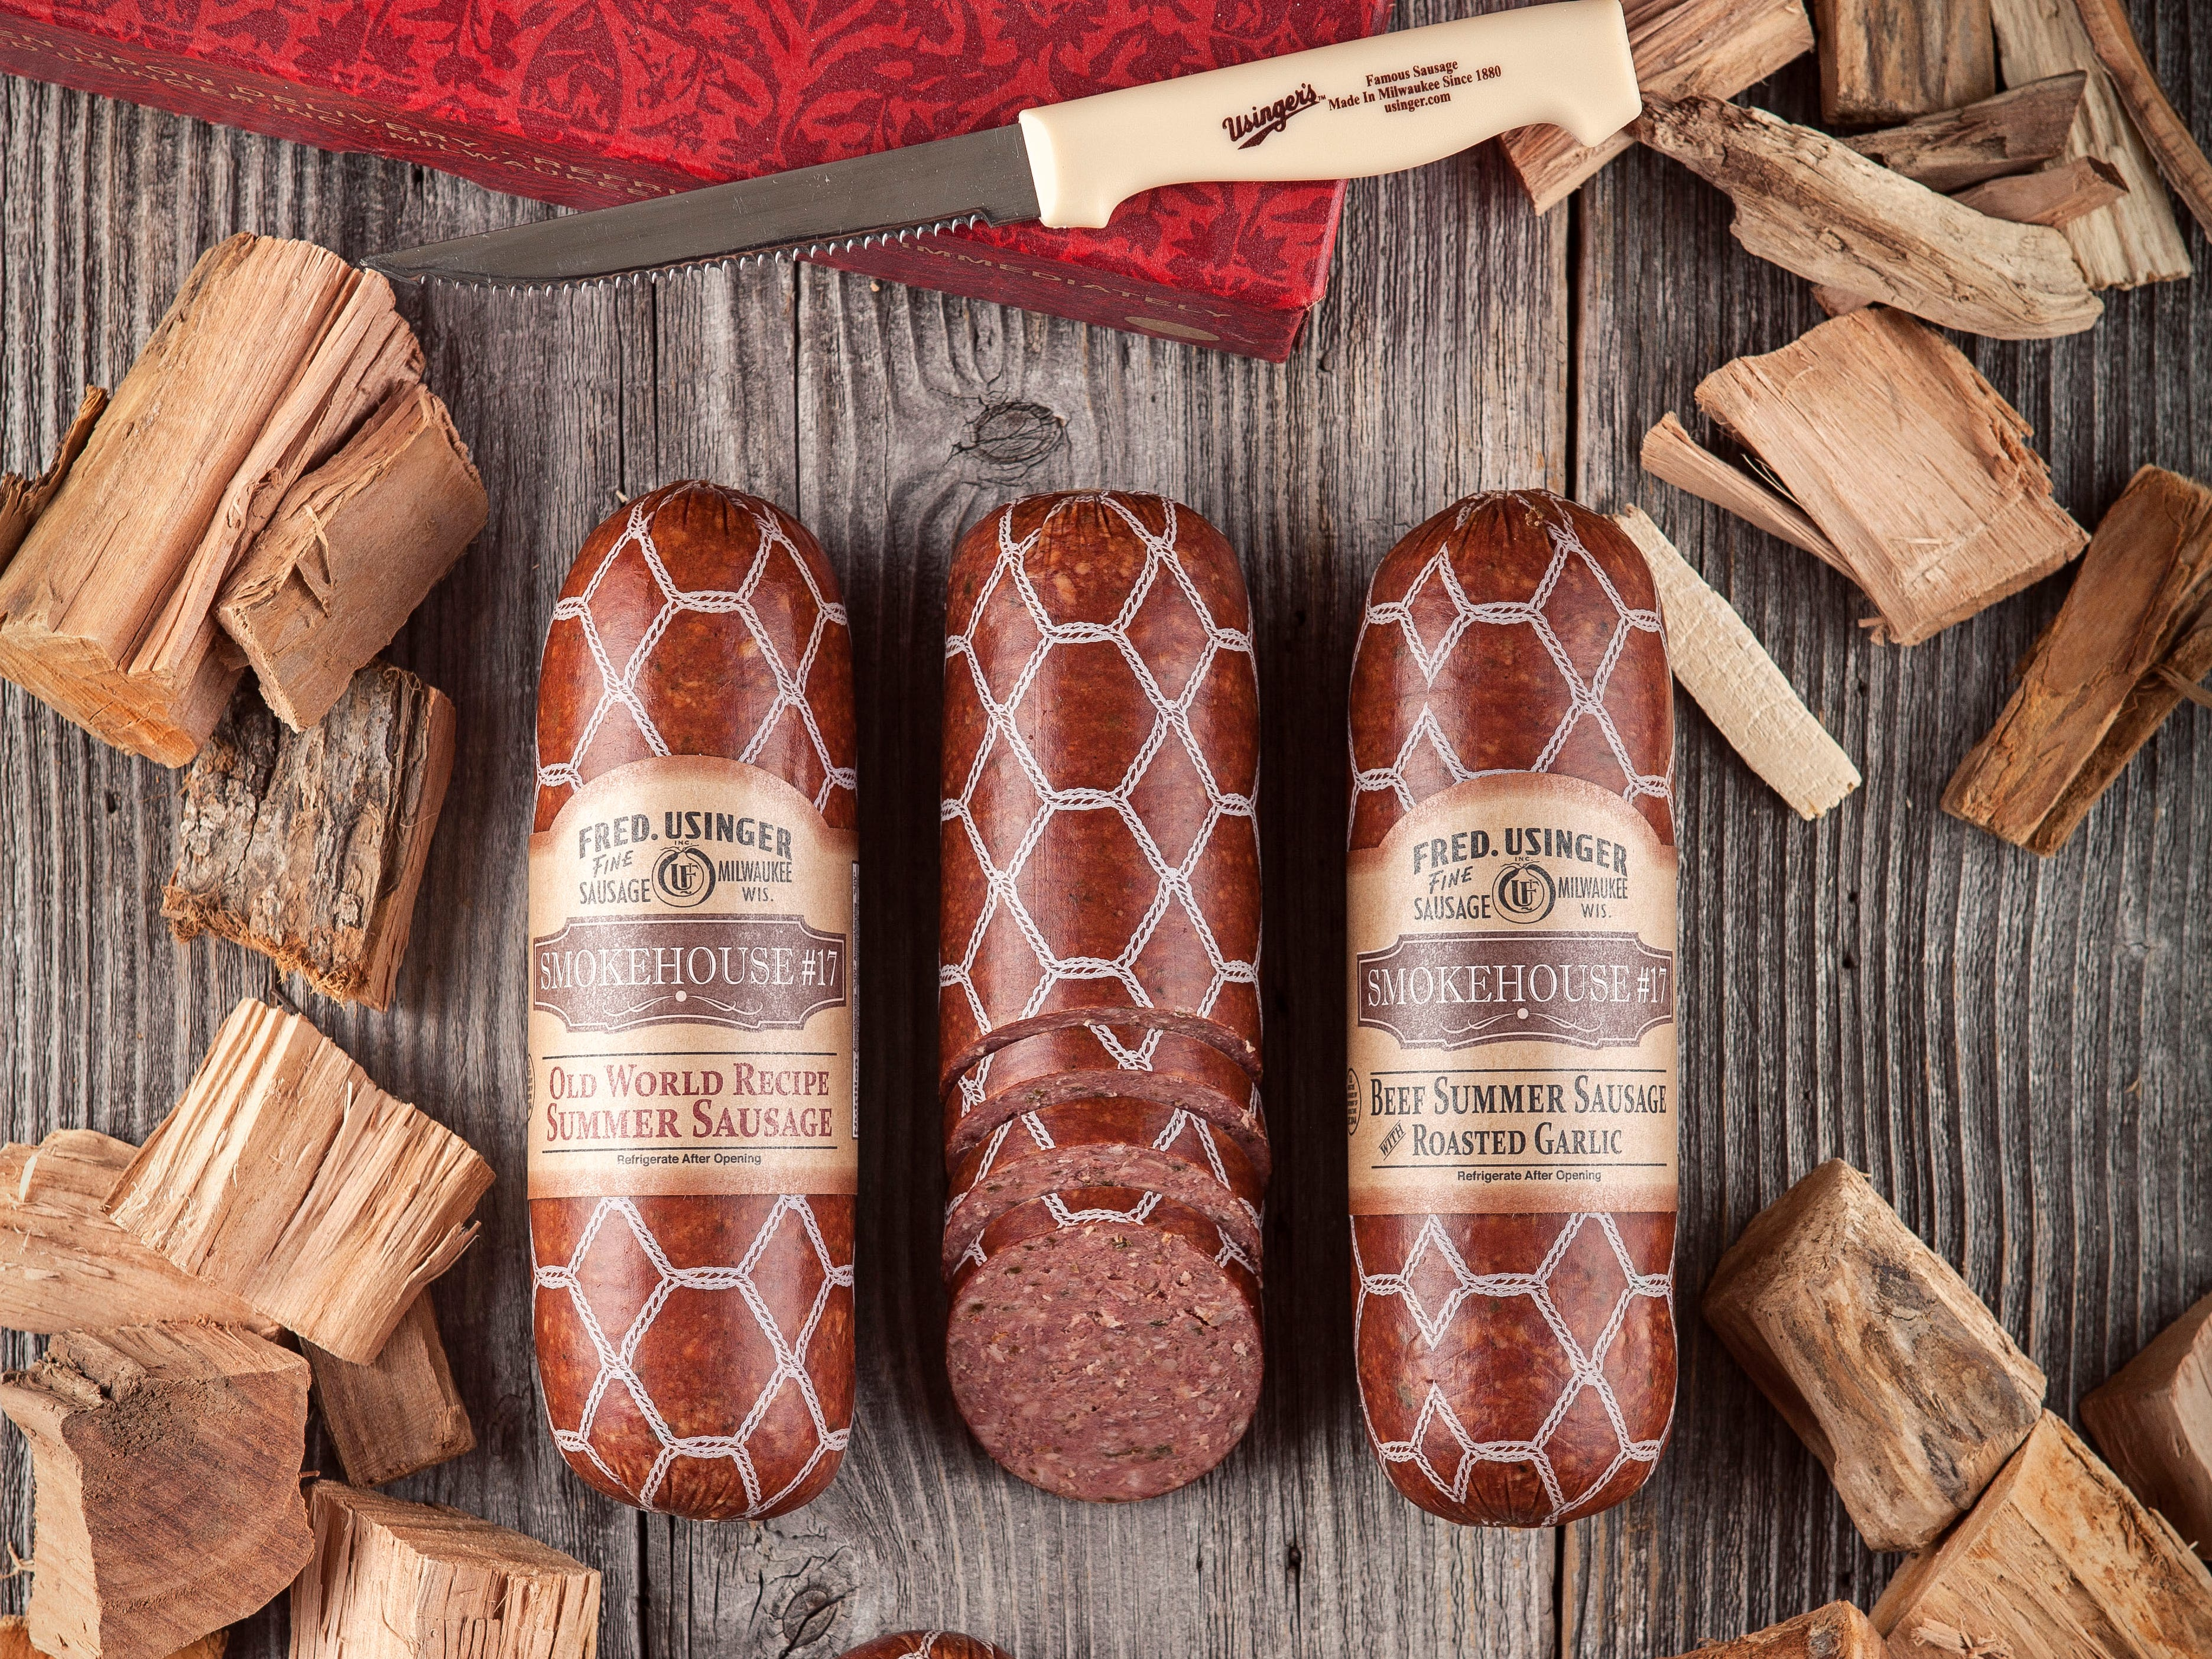 Some of the once-a-year sausages might be at Usinger's retail shop at 1030 N. Old World Third St., or they might not. The surest way to obtain them is through holiday gift boxes.